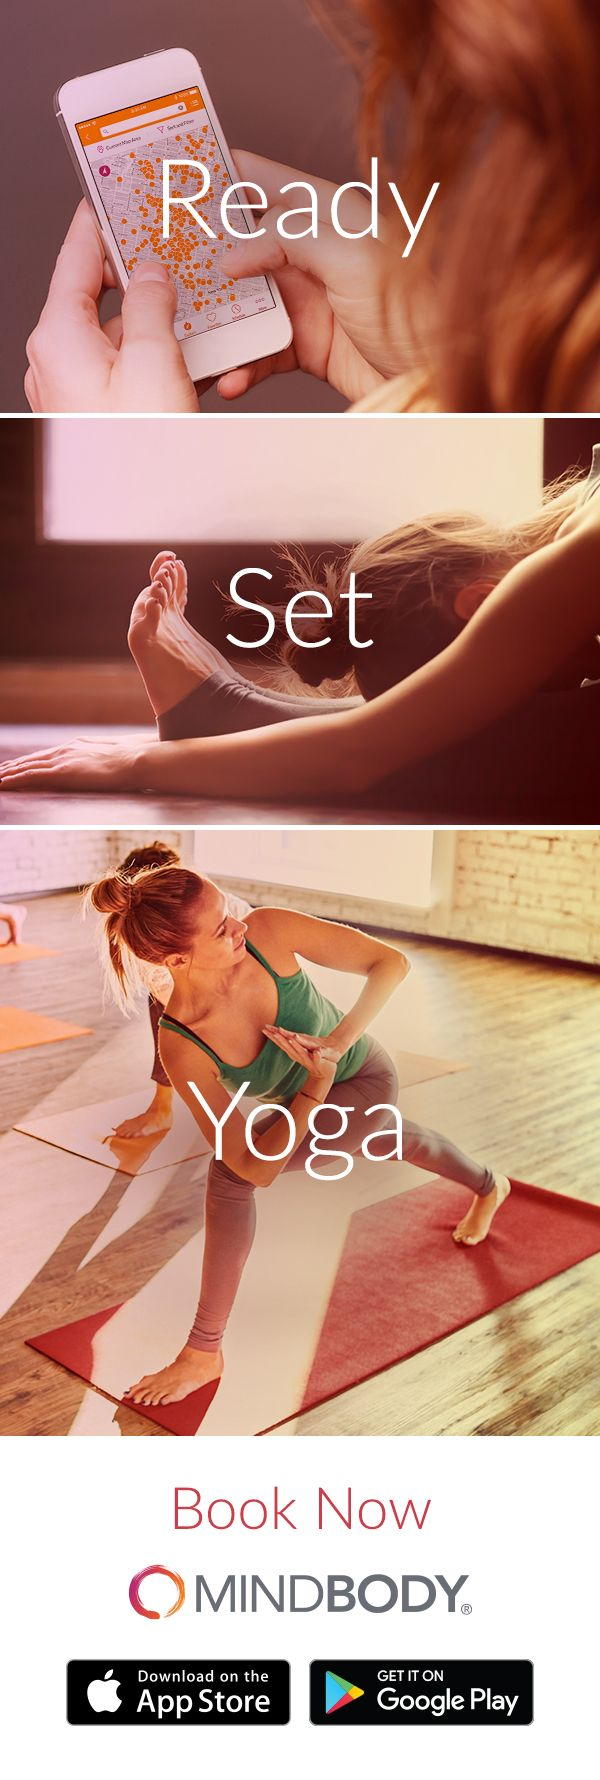 Download the free MINDBODY app today and find exclusive deals on fitness and yoga classes near you.